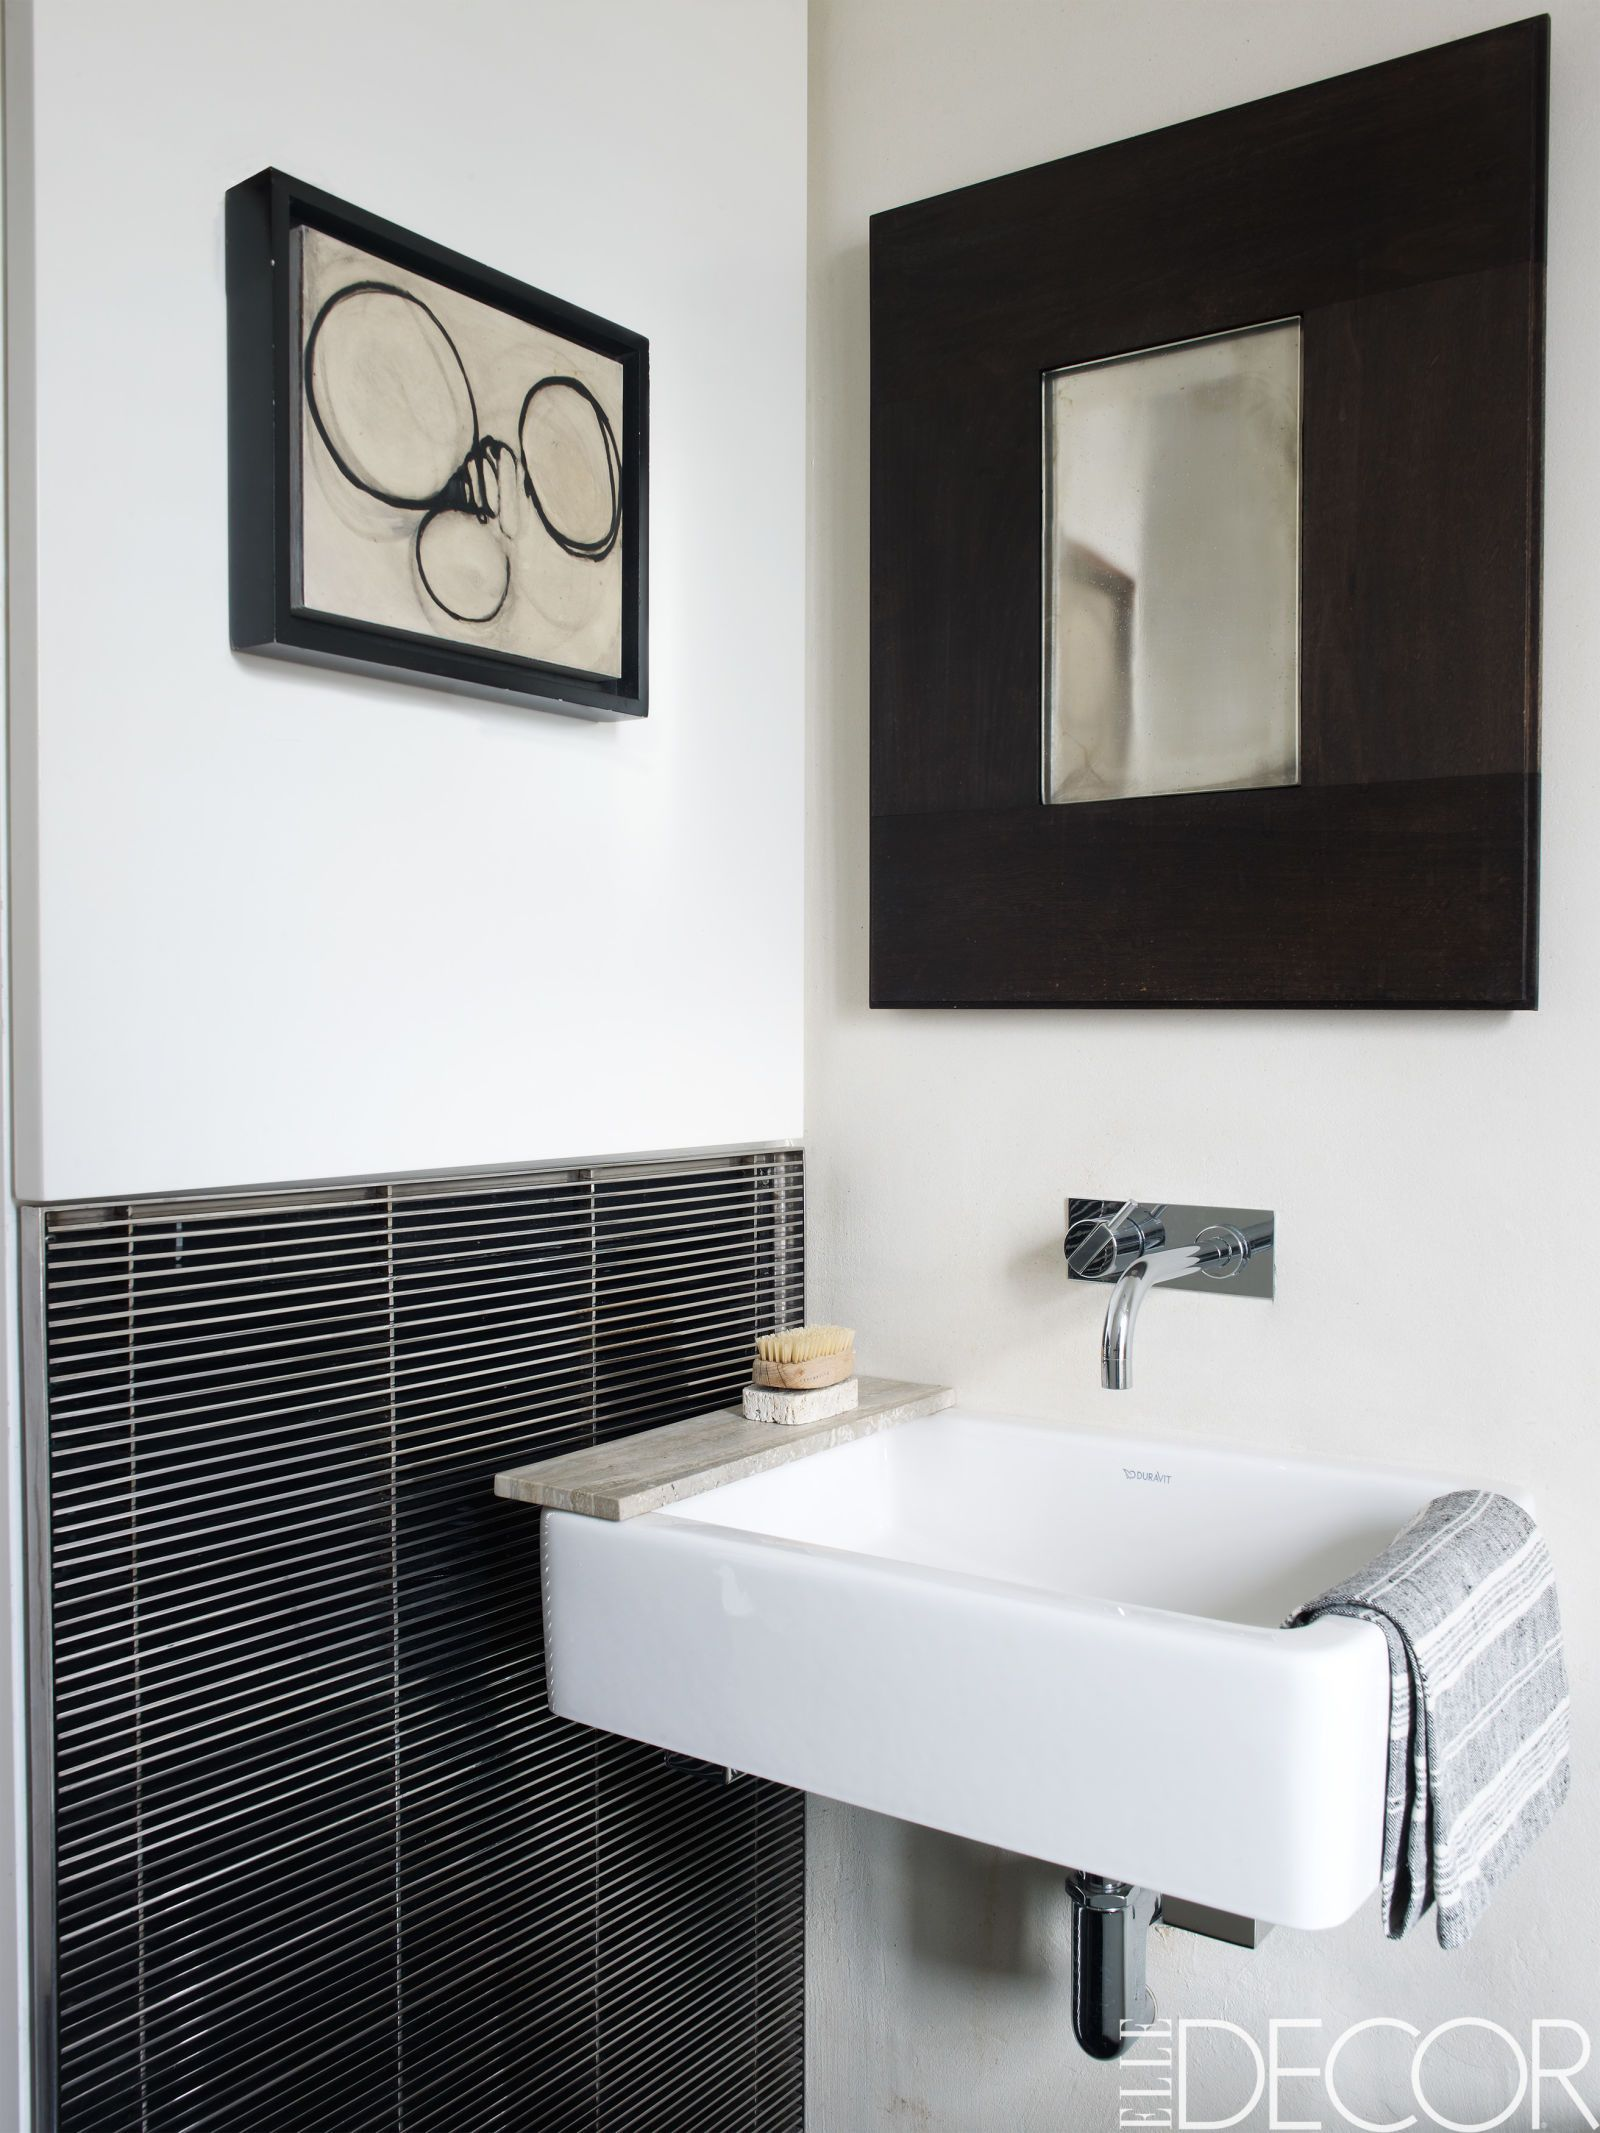 Bathroom ideas black and white - Bathroom Ideas Black And White 3